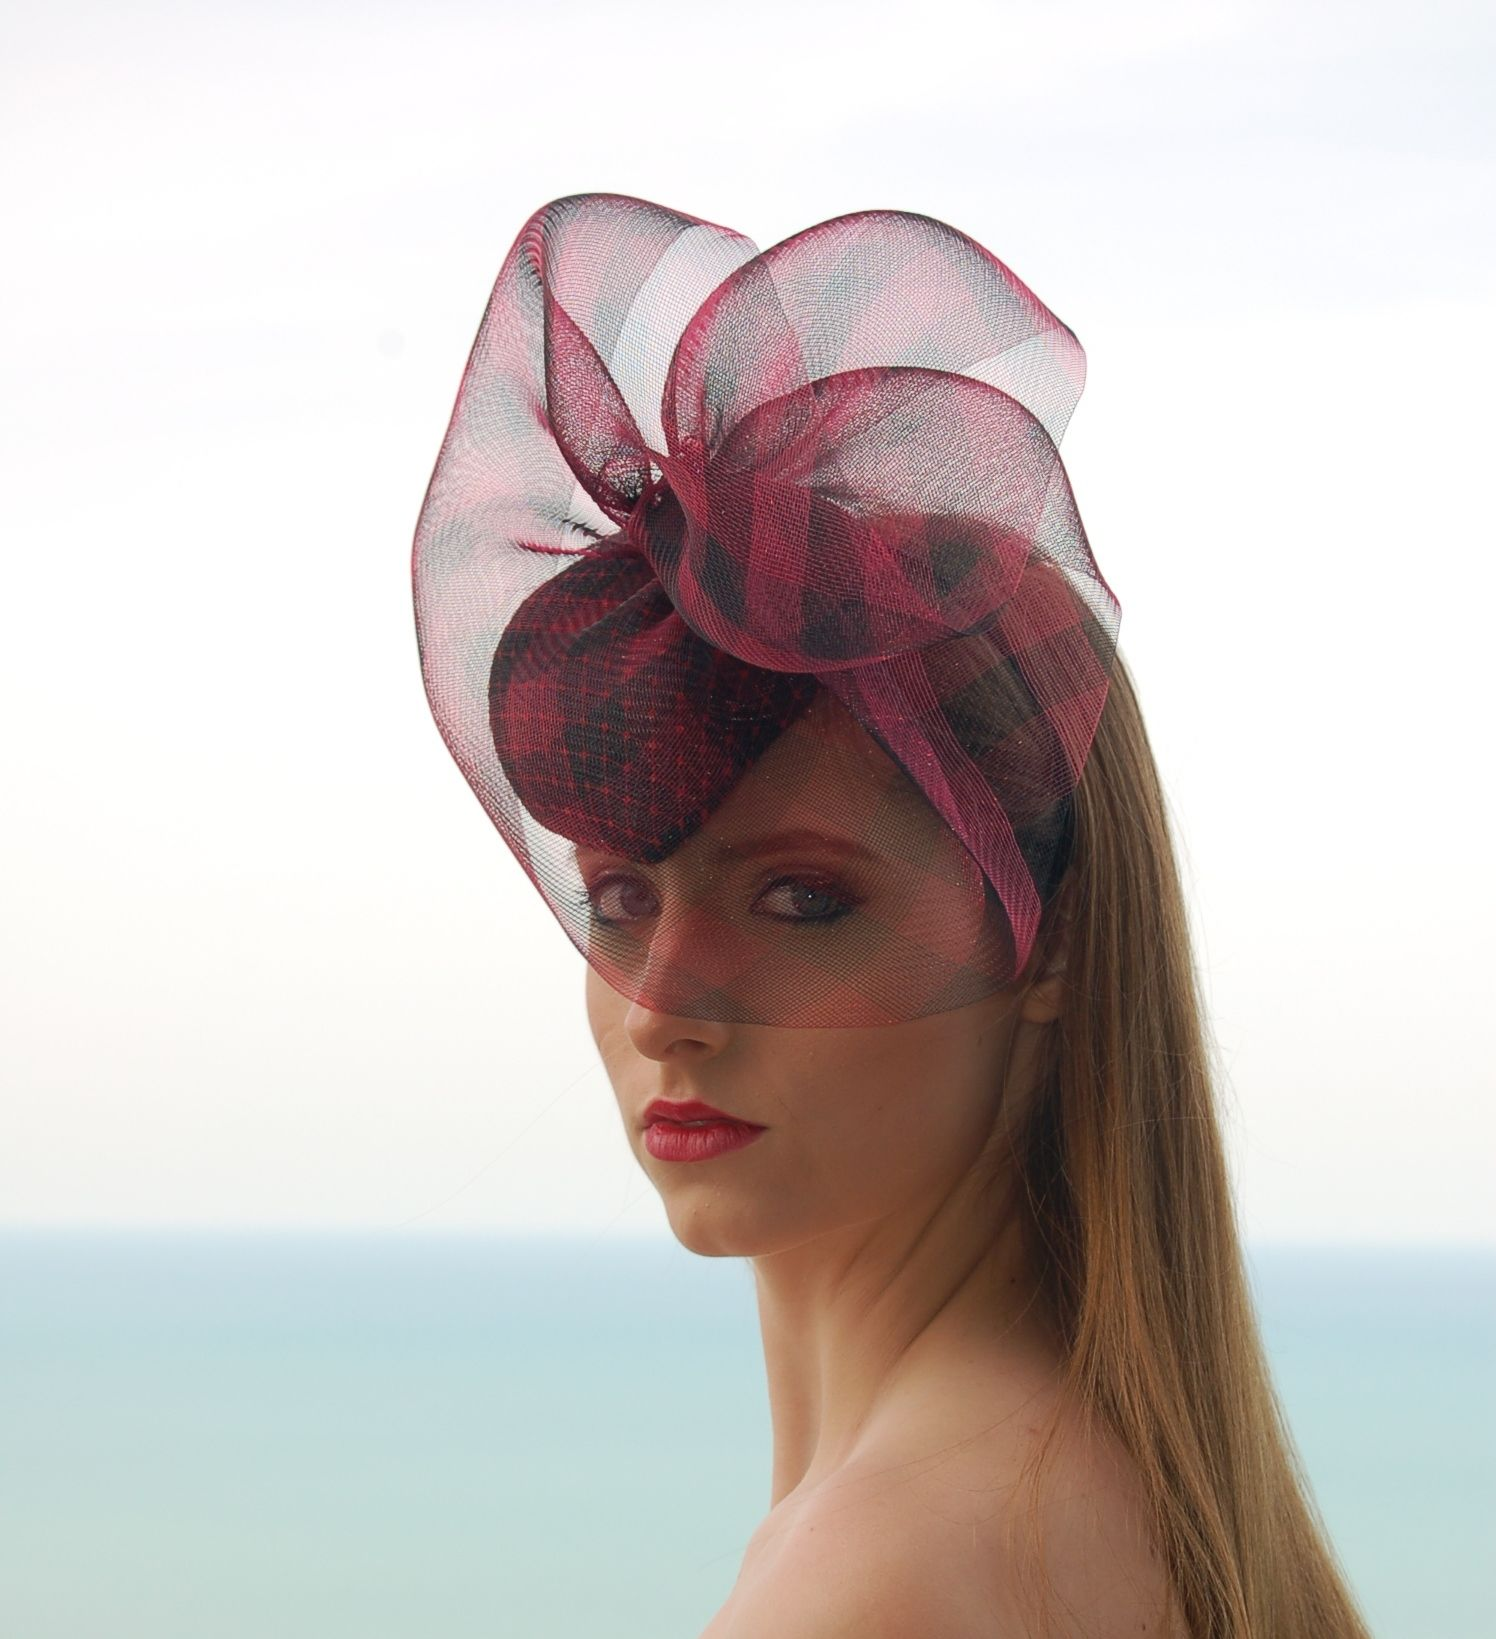 Red Heart-Shaped Cocktail Hat with Crinoline